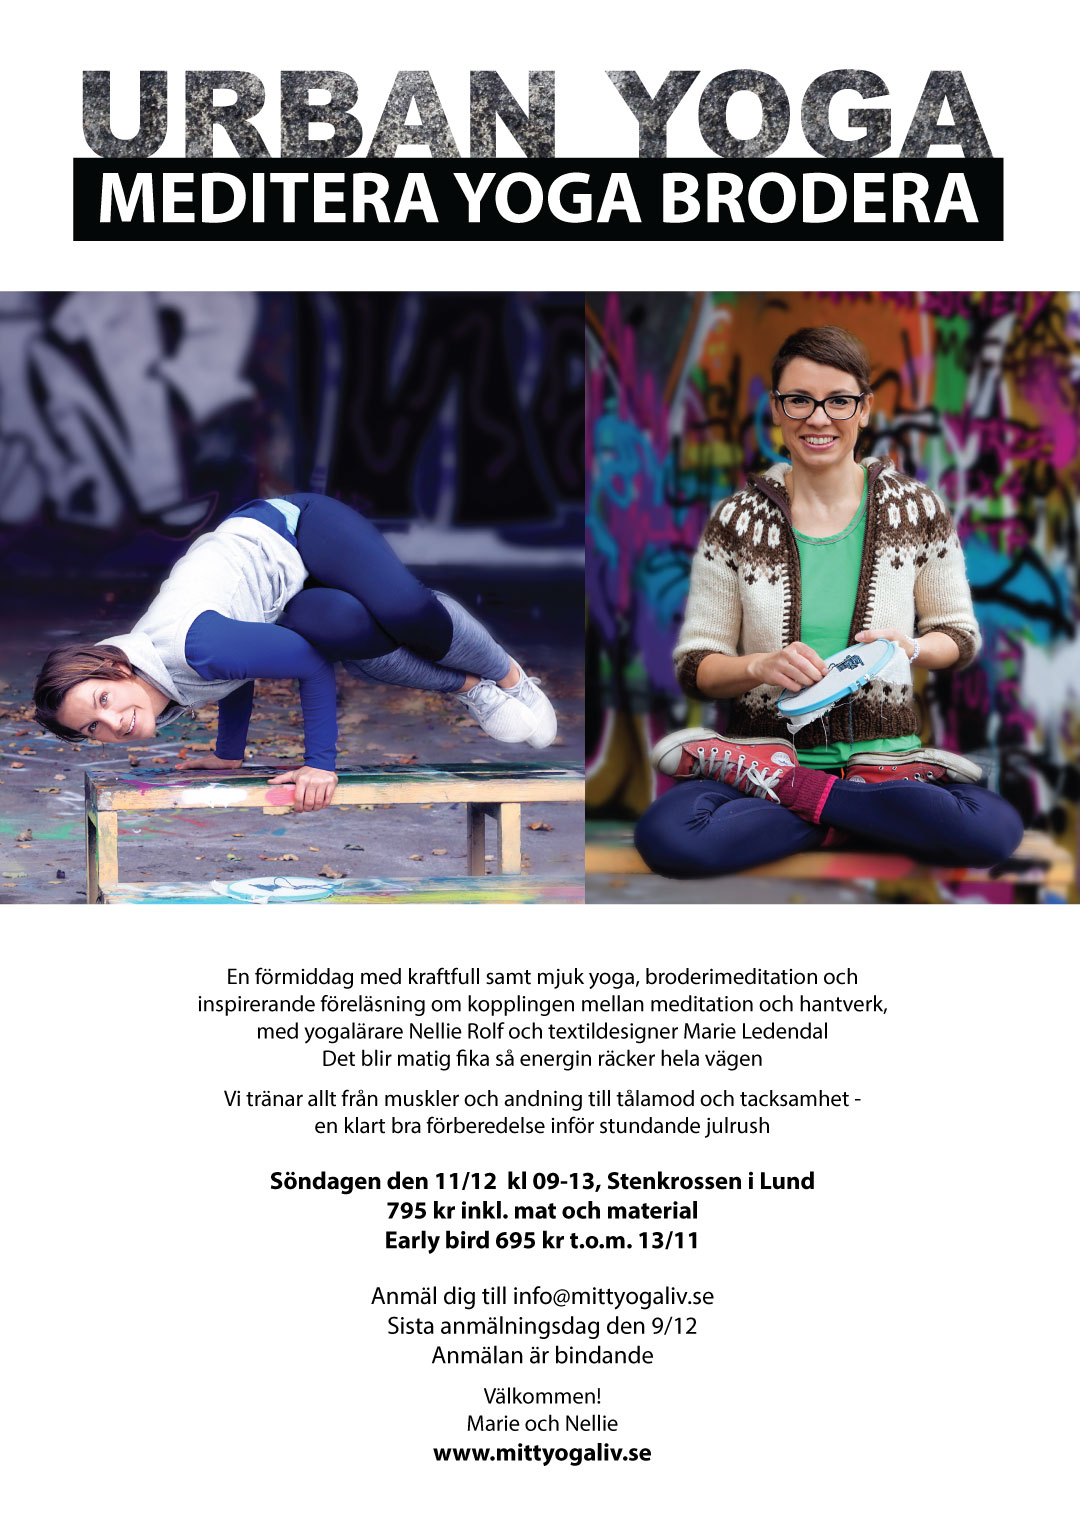 urban-yoga-event-poster_mitt-yogaliv_by-marie-ledendal-o-nellie-rolf_web